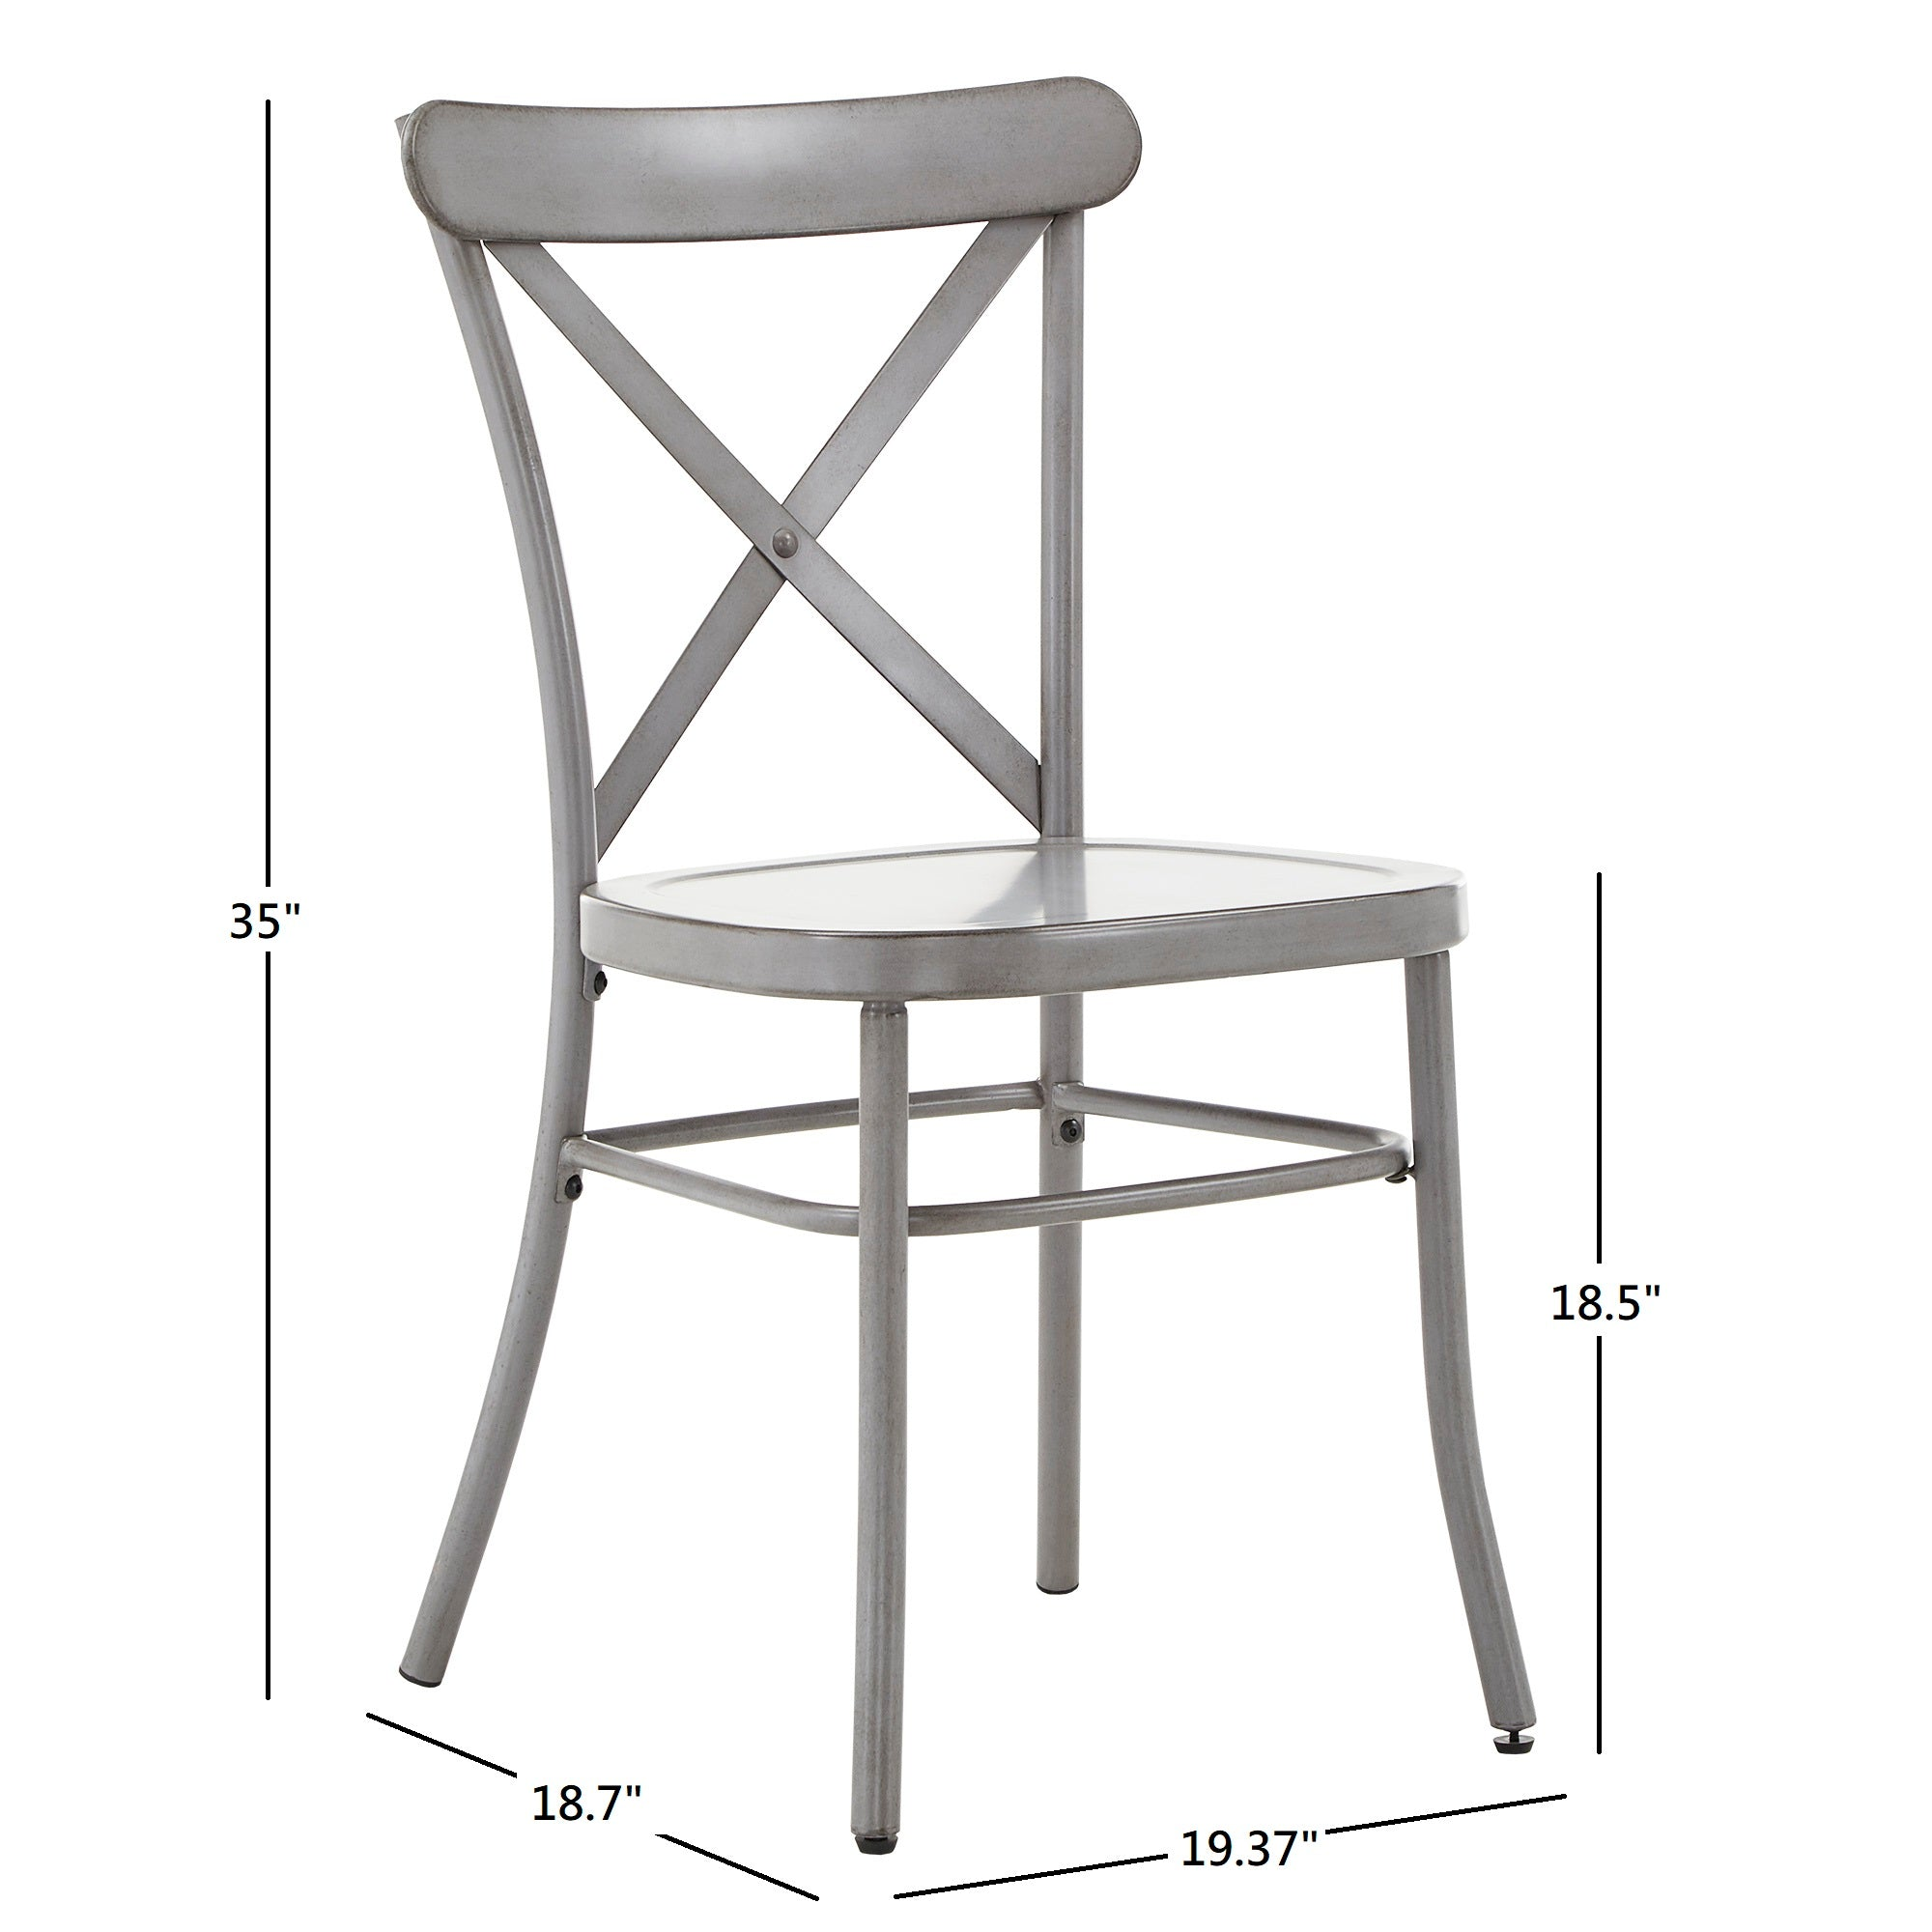 Metal Dining Chair (Set of 2) - Antique Grey Finish